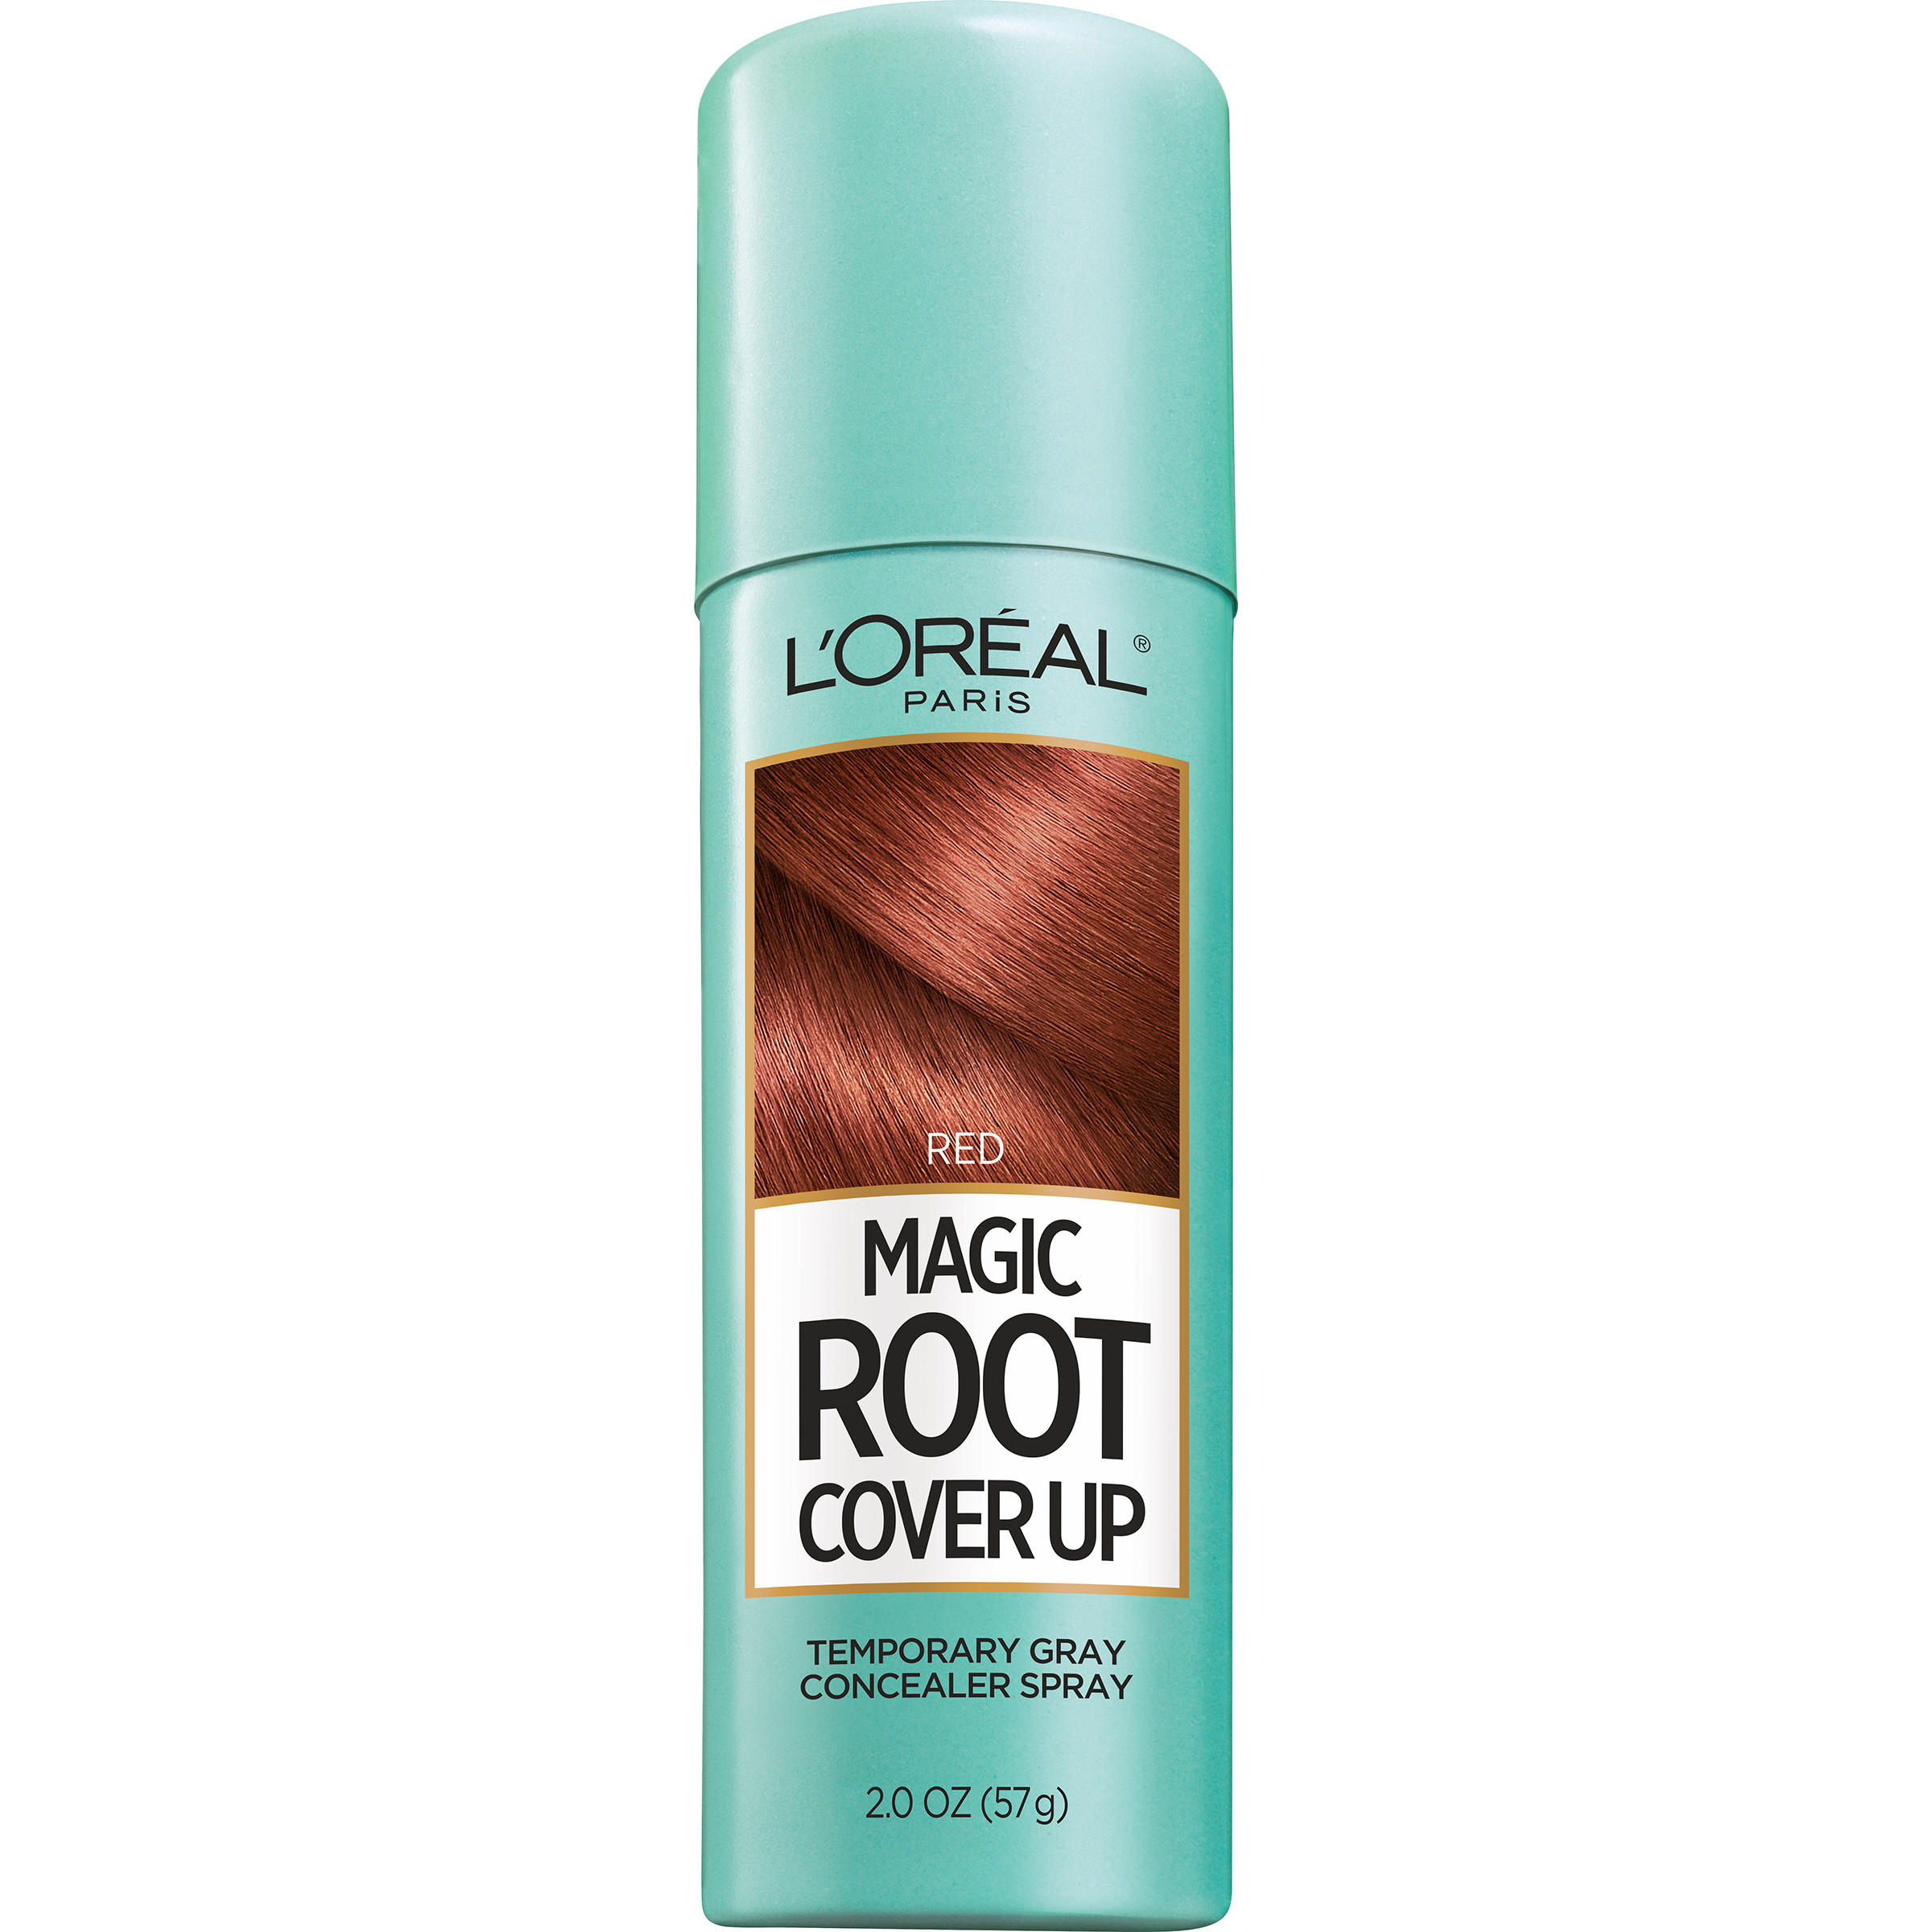 LOreal Paris Magic Root Cover Up Gray Concealer Hair Spray Red